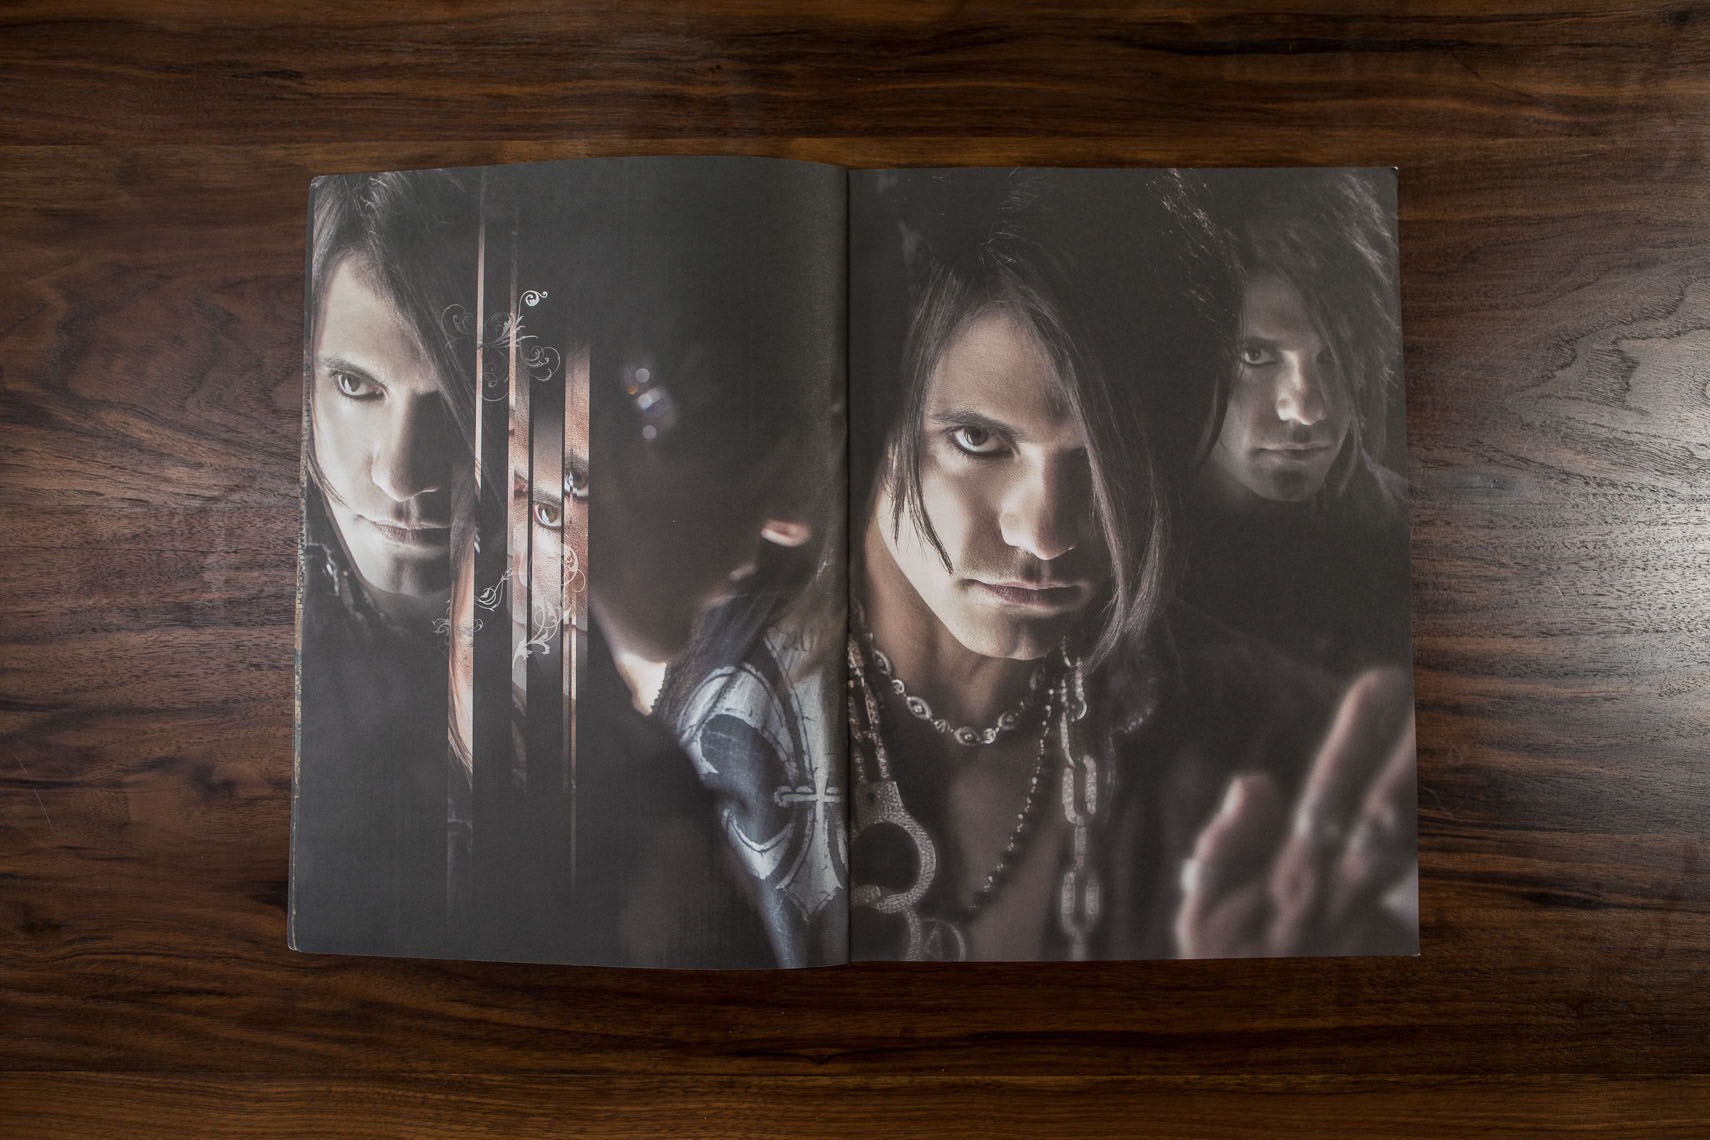 Souvenir program for Criss Angel and Cirque du Soleil